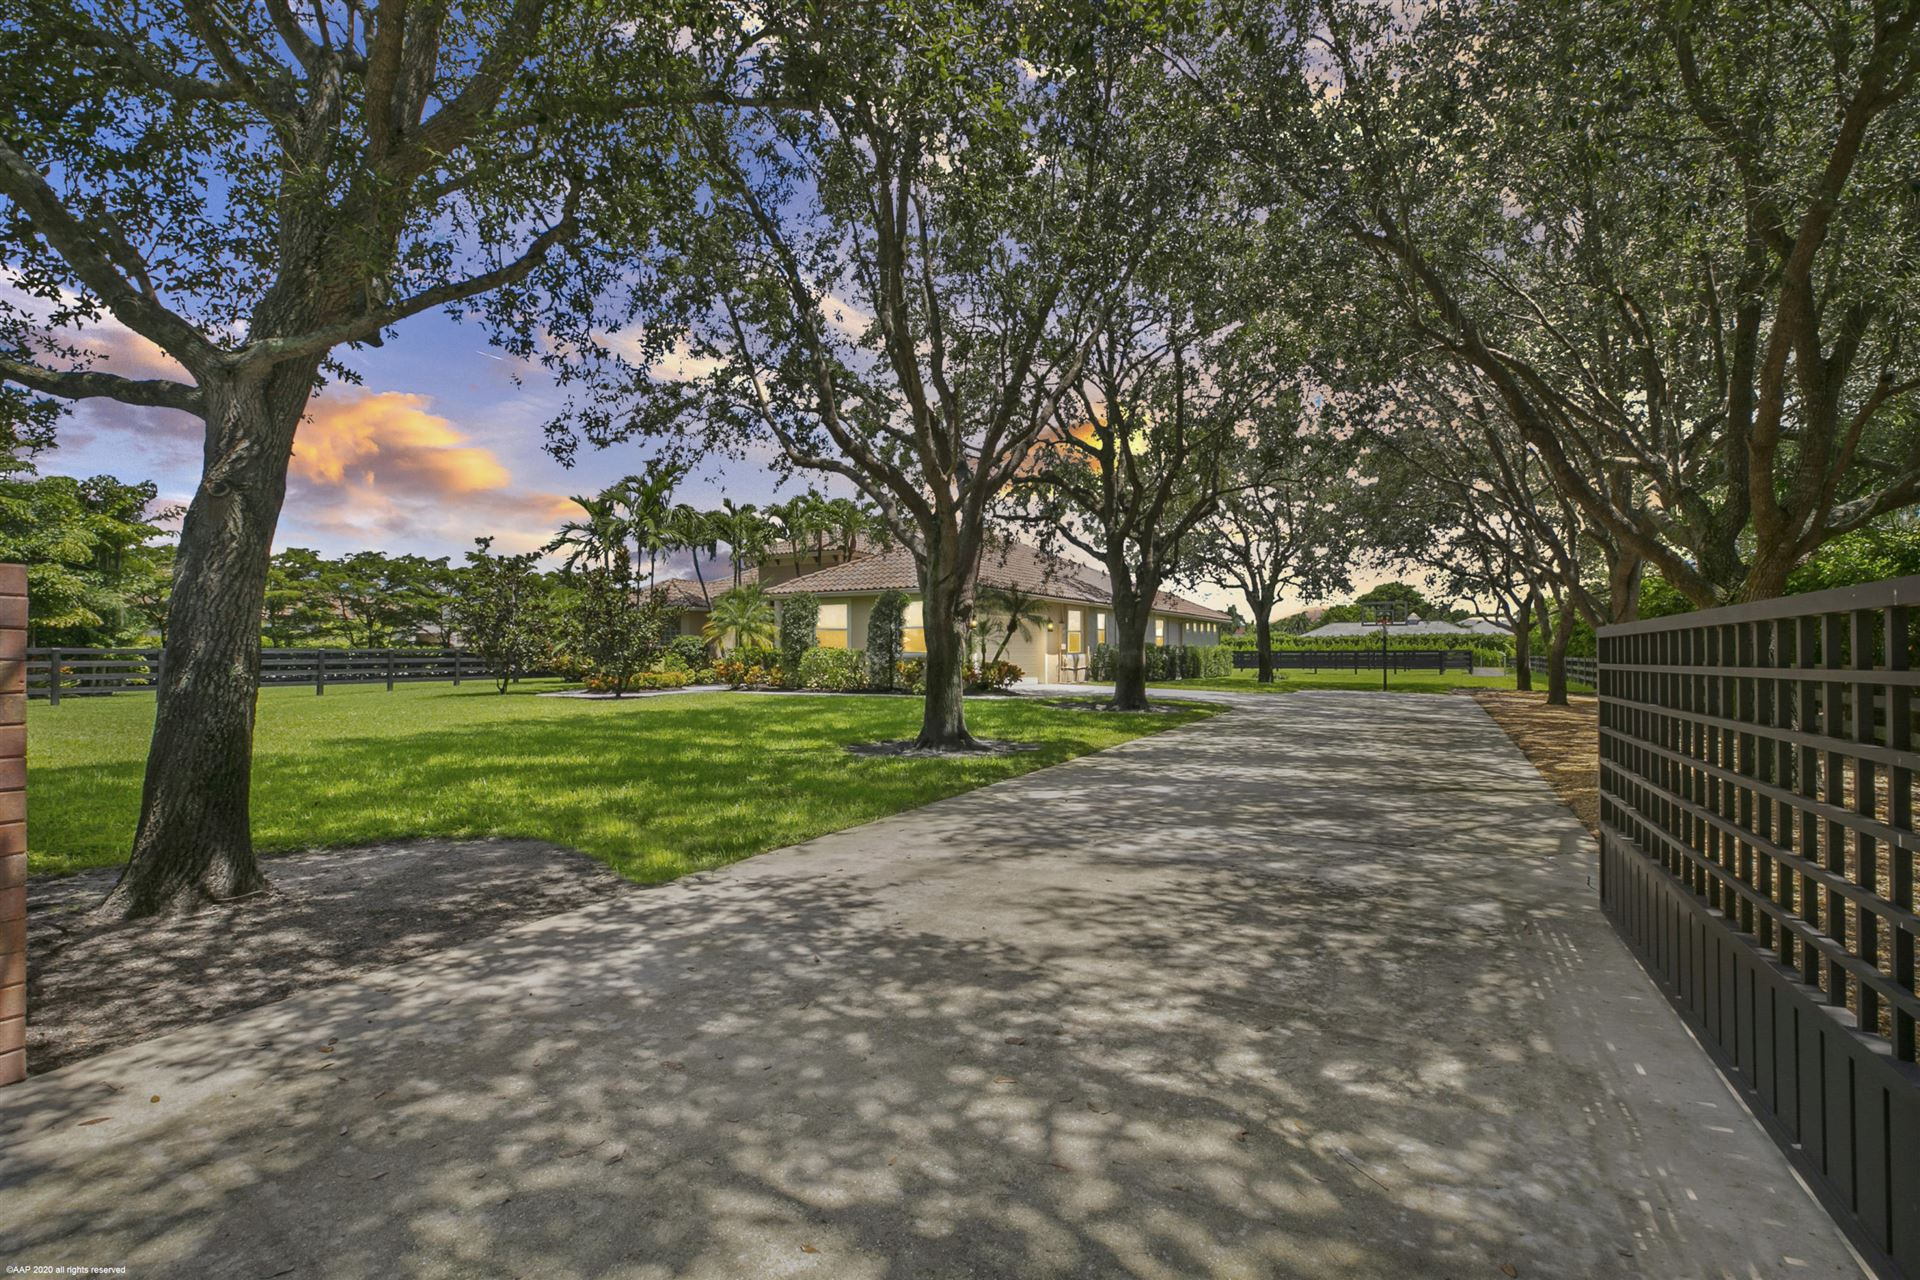 1801 Clydesdale, Wellington, 33414 Photo 1